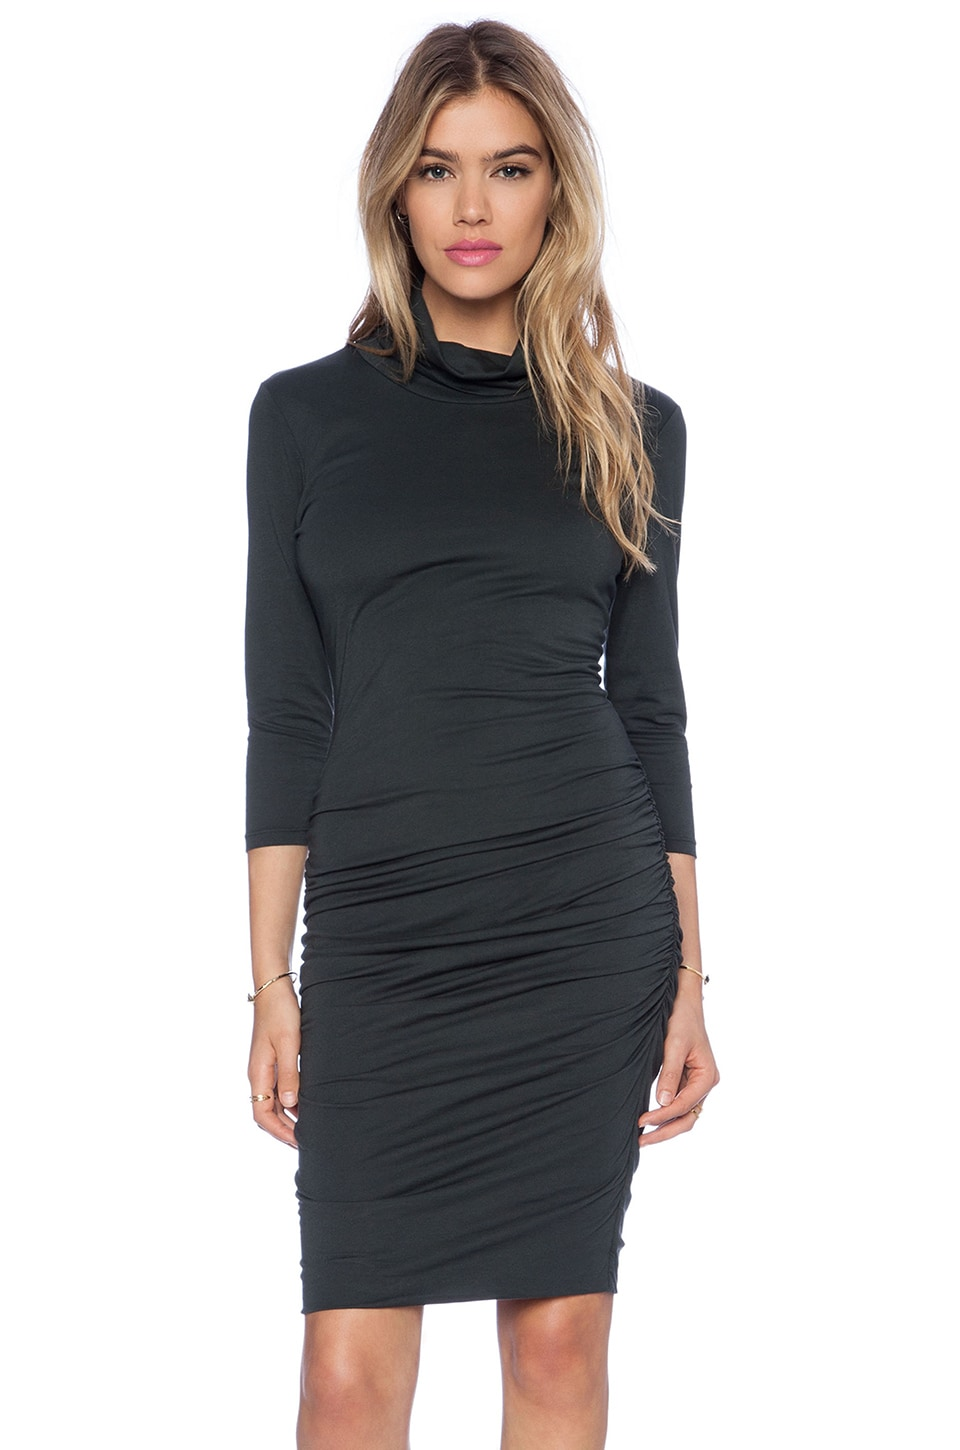 Bobi Modal Jersey Turtleneck Midi Dress in Pine Tree